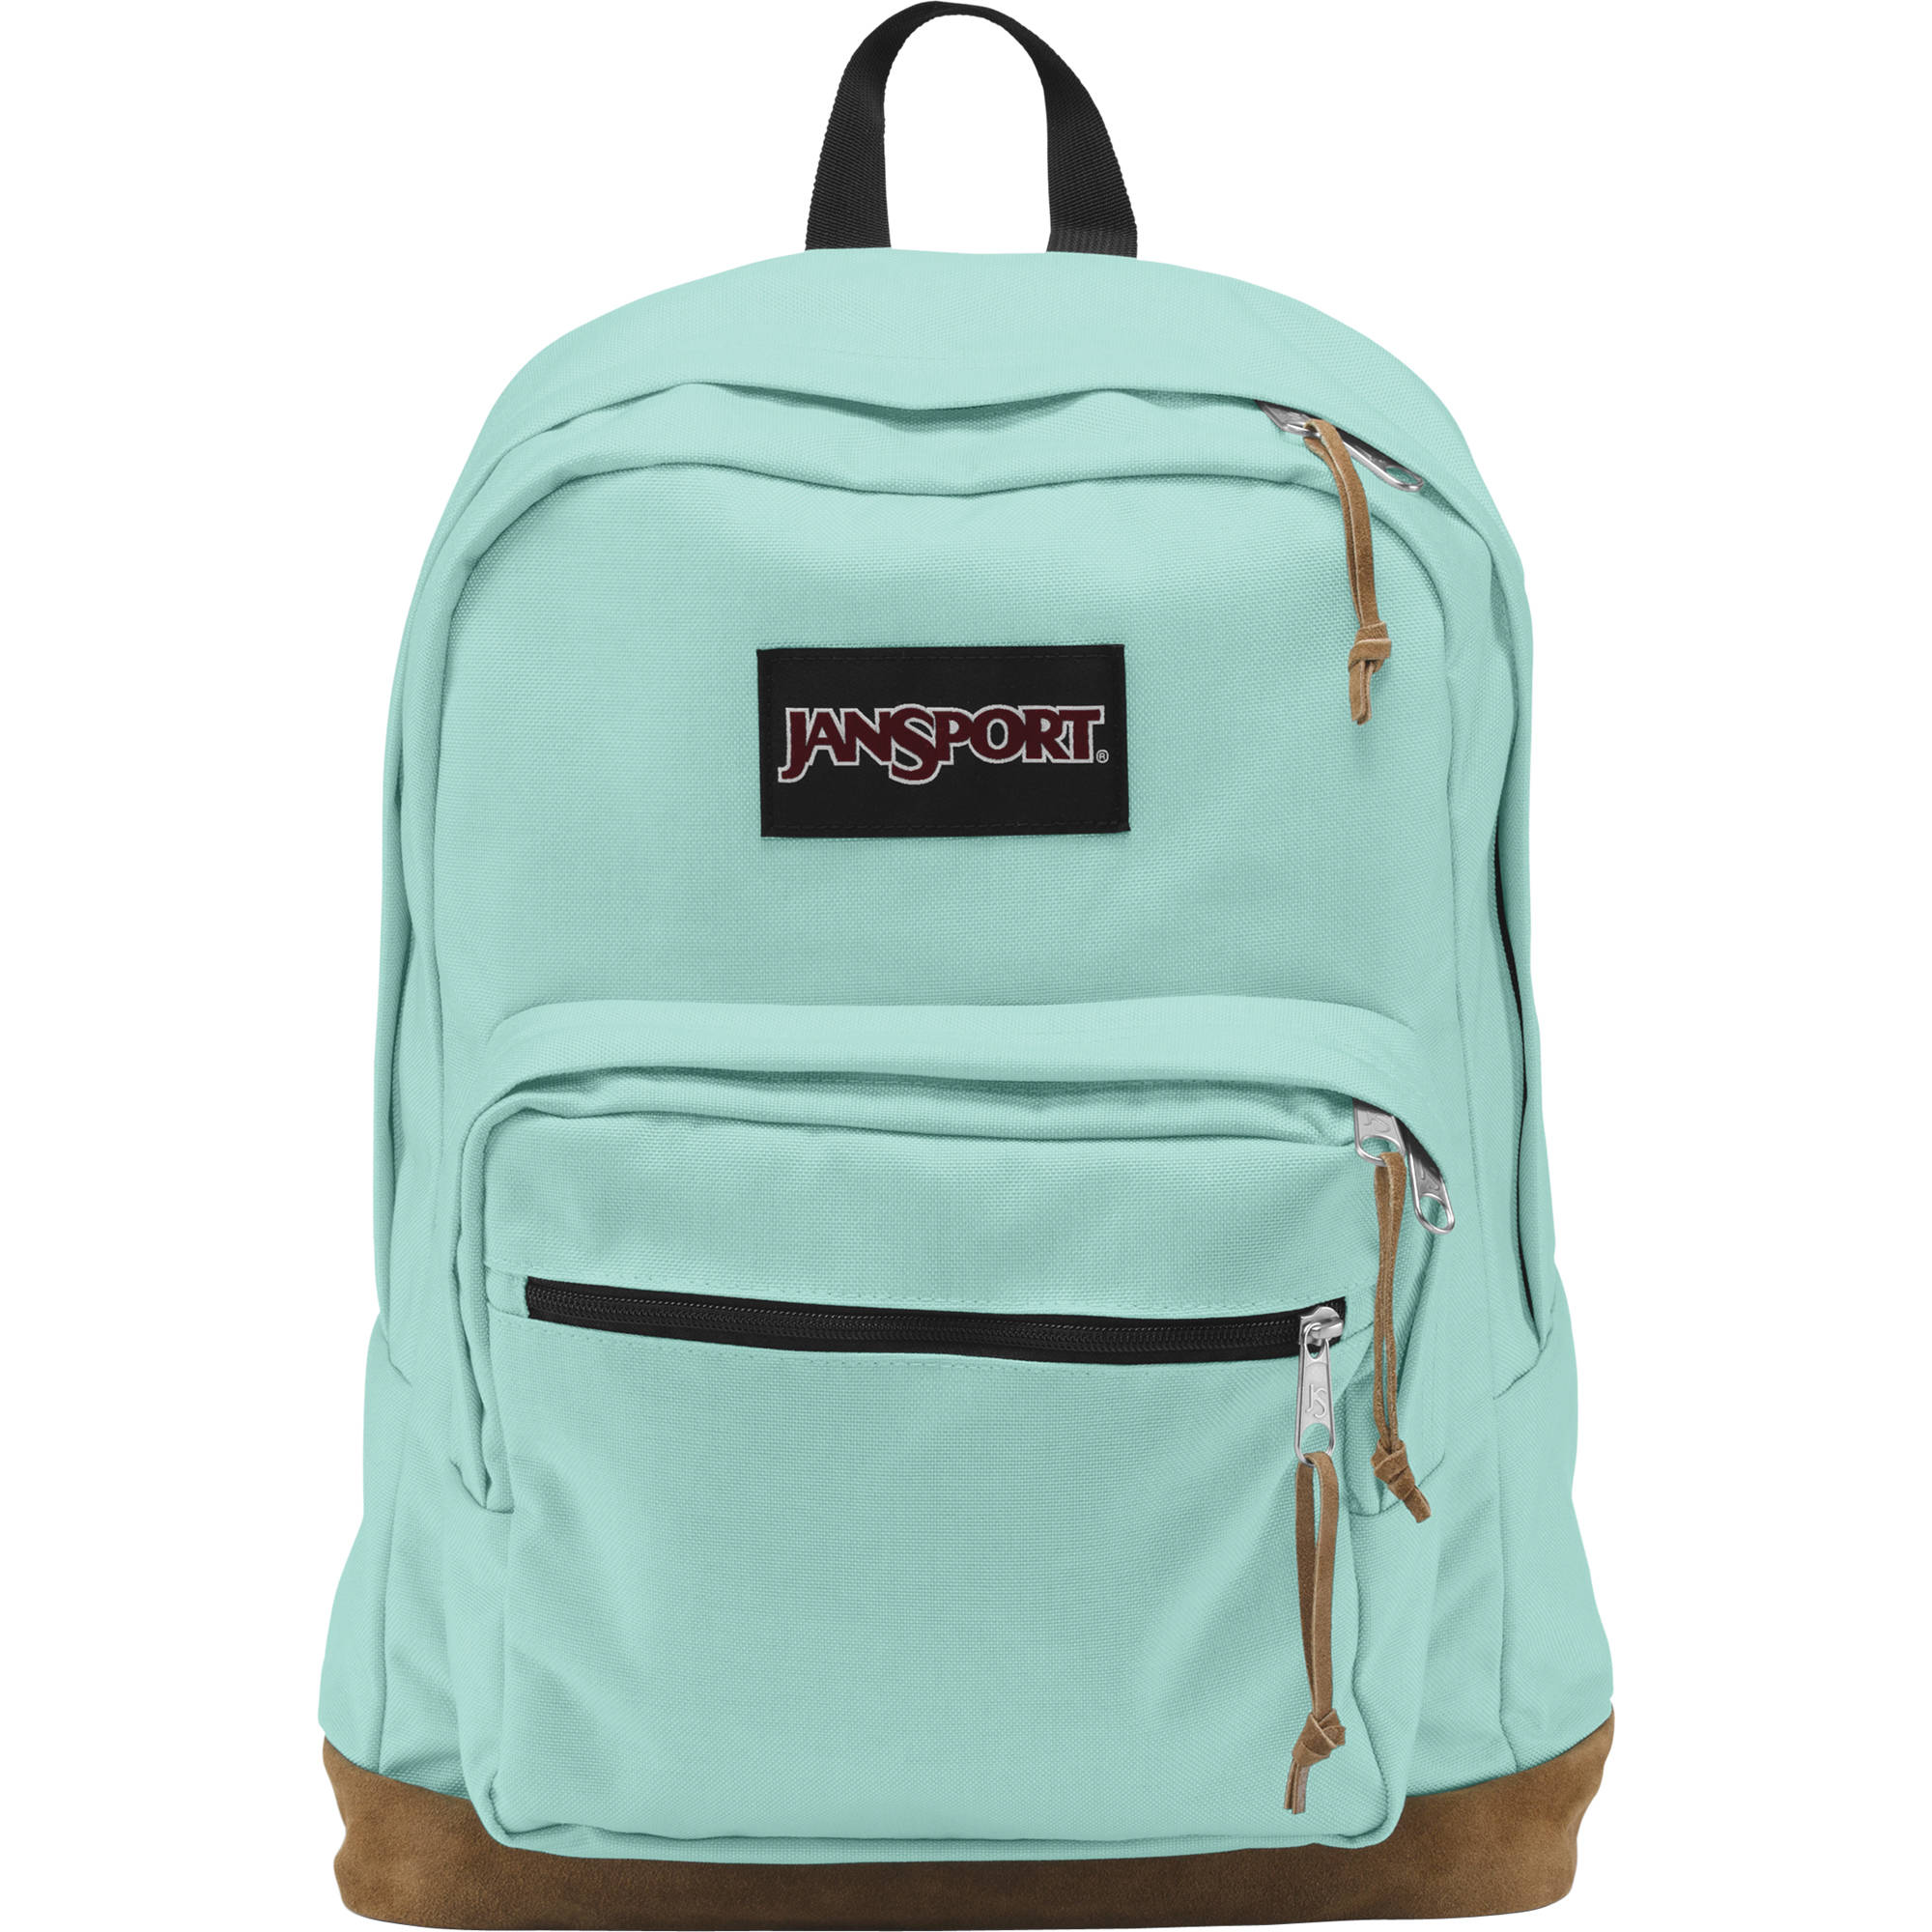 Jansport Right Pack Backpack SoWUcqVi